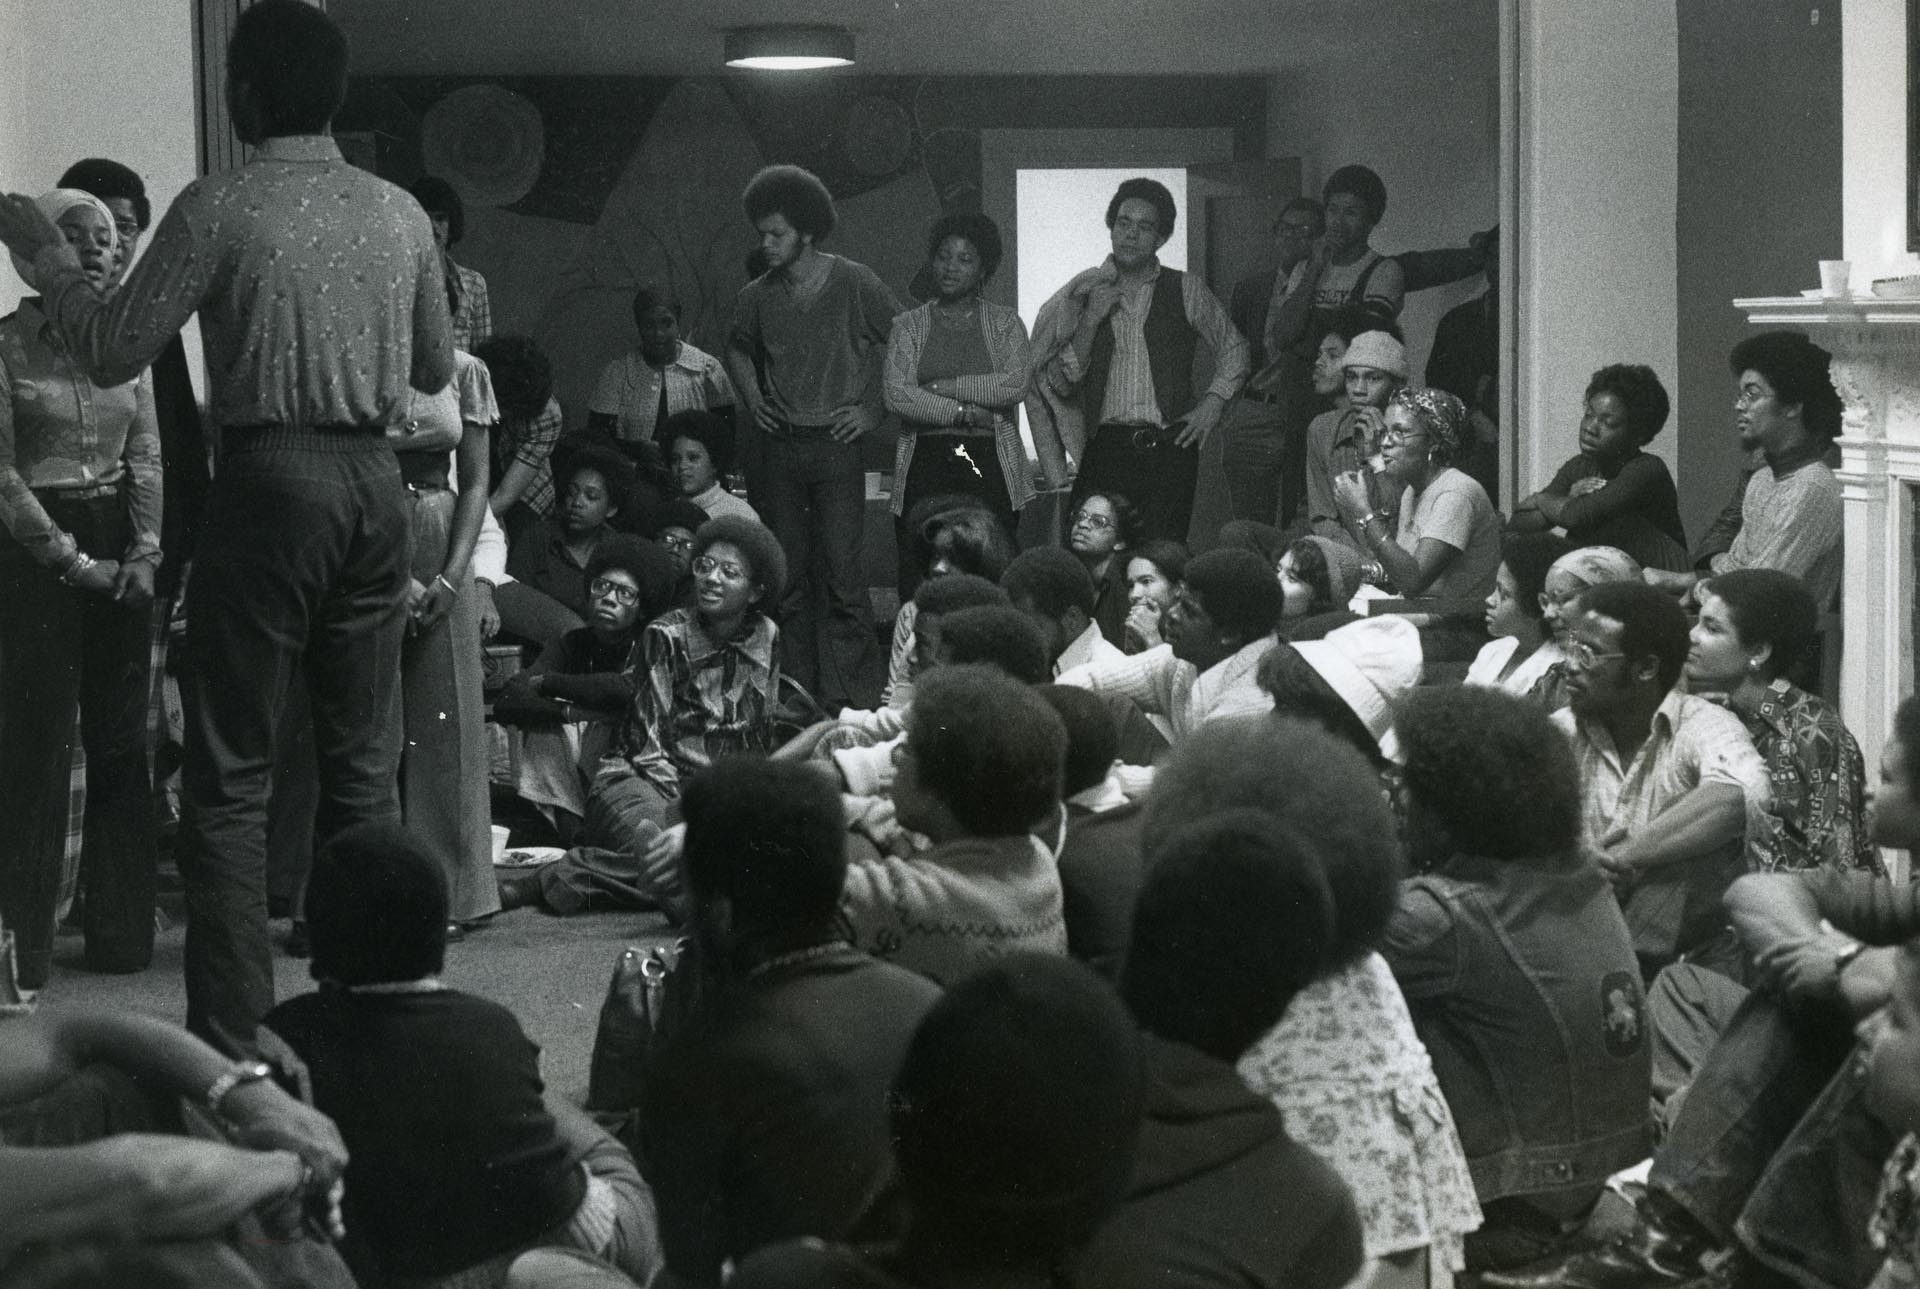 A Brief Representative History of African American Studies at Wesleyan